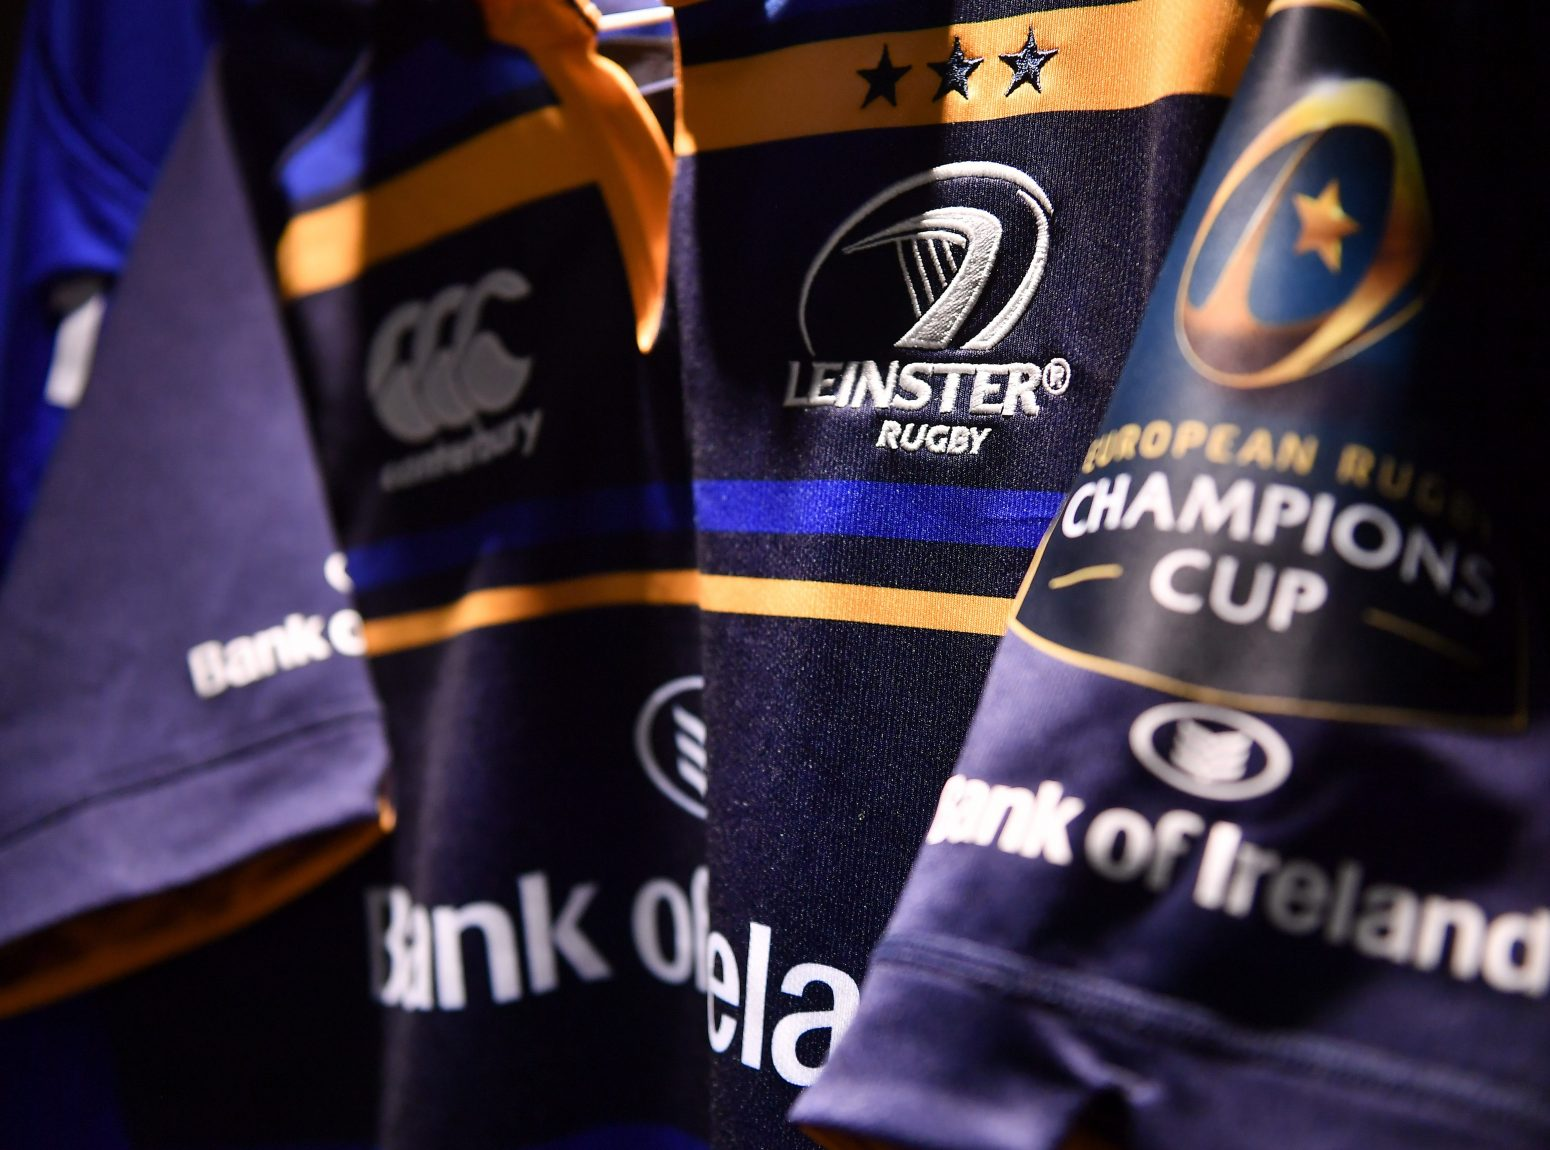 The Leinster European Champions Cup jersey. Photo by Brendan Moran/Sportsfile